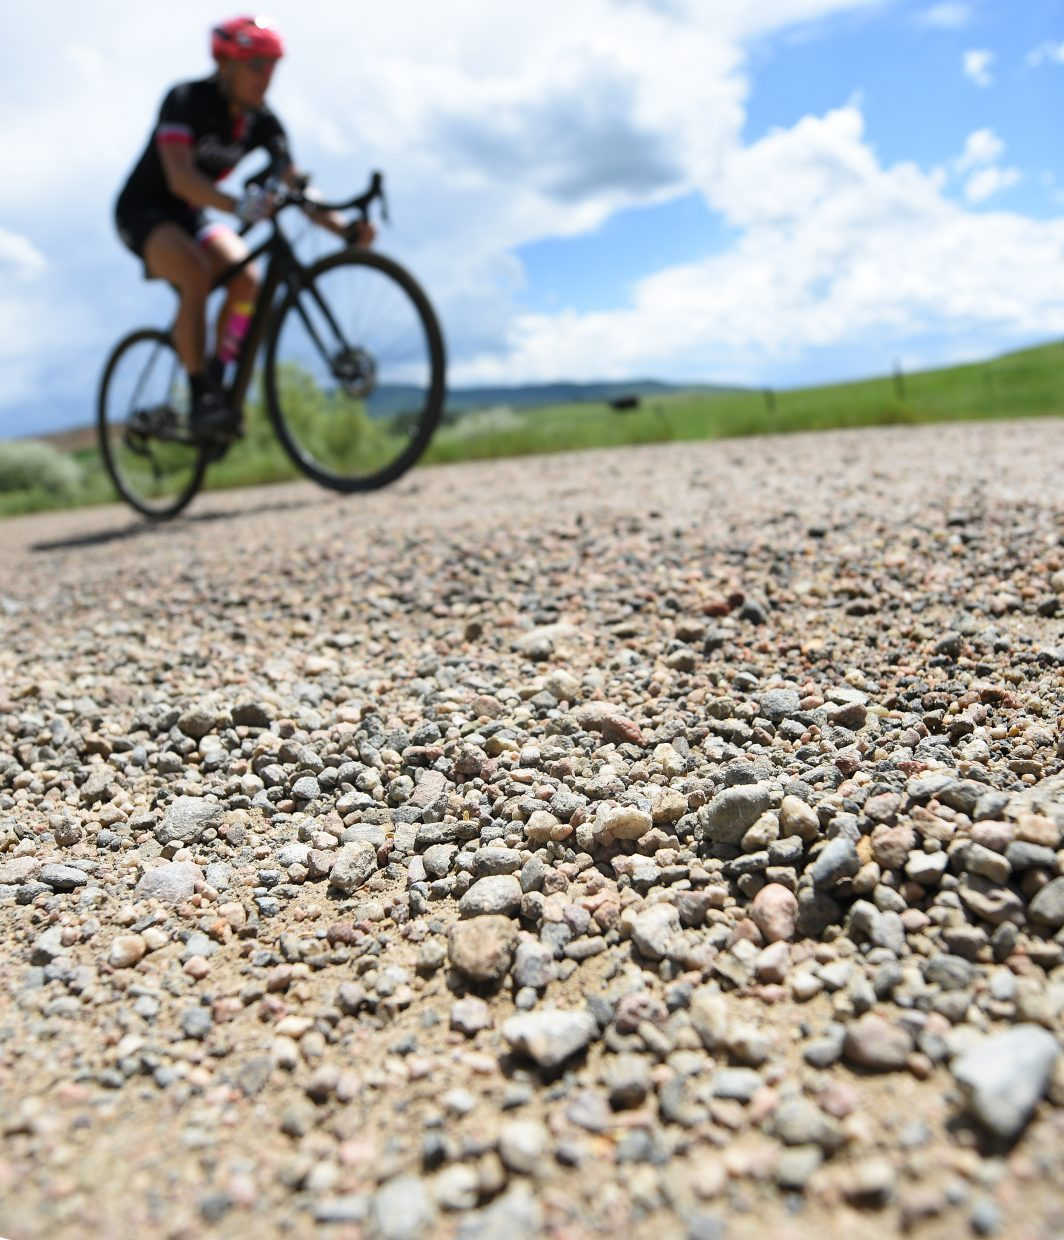 afb3147f33a Gravel cycling trend takes local riders onto backroads, even to Kansas |  SteamboatToday.com